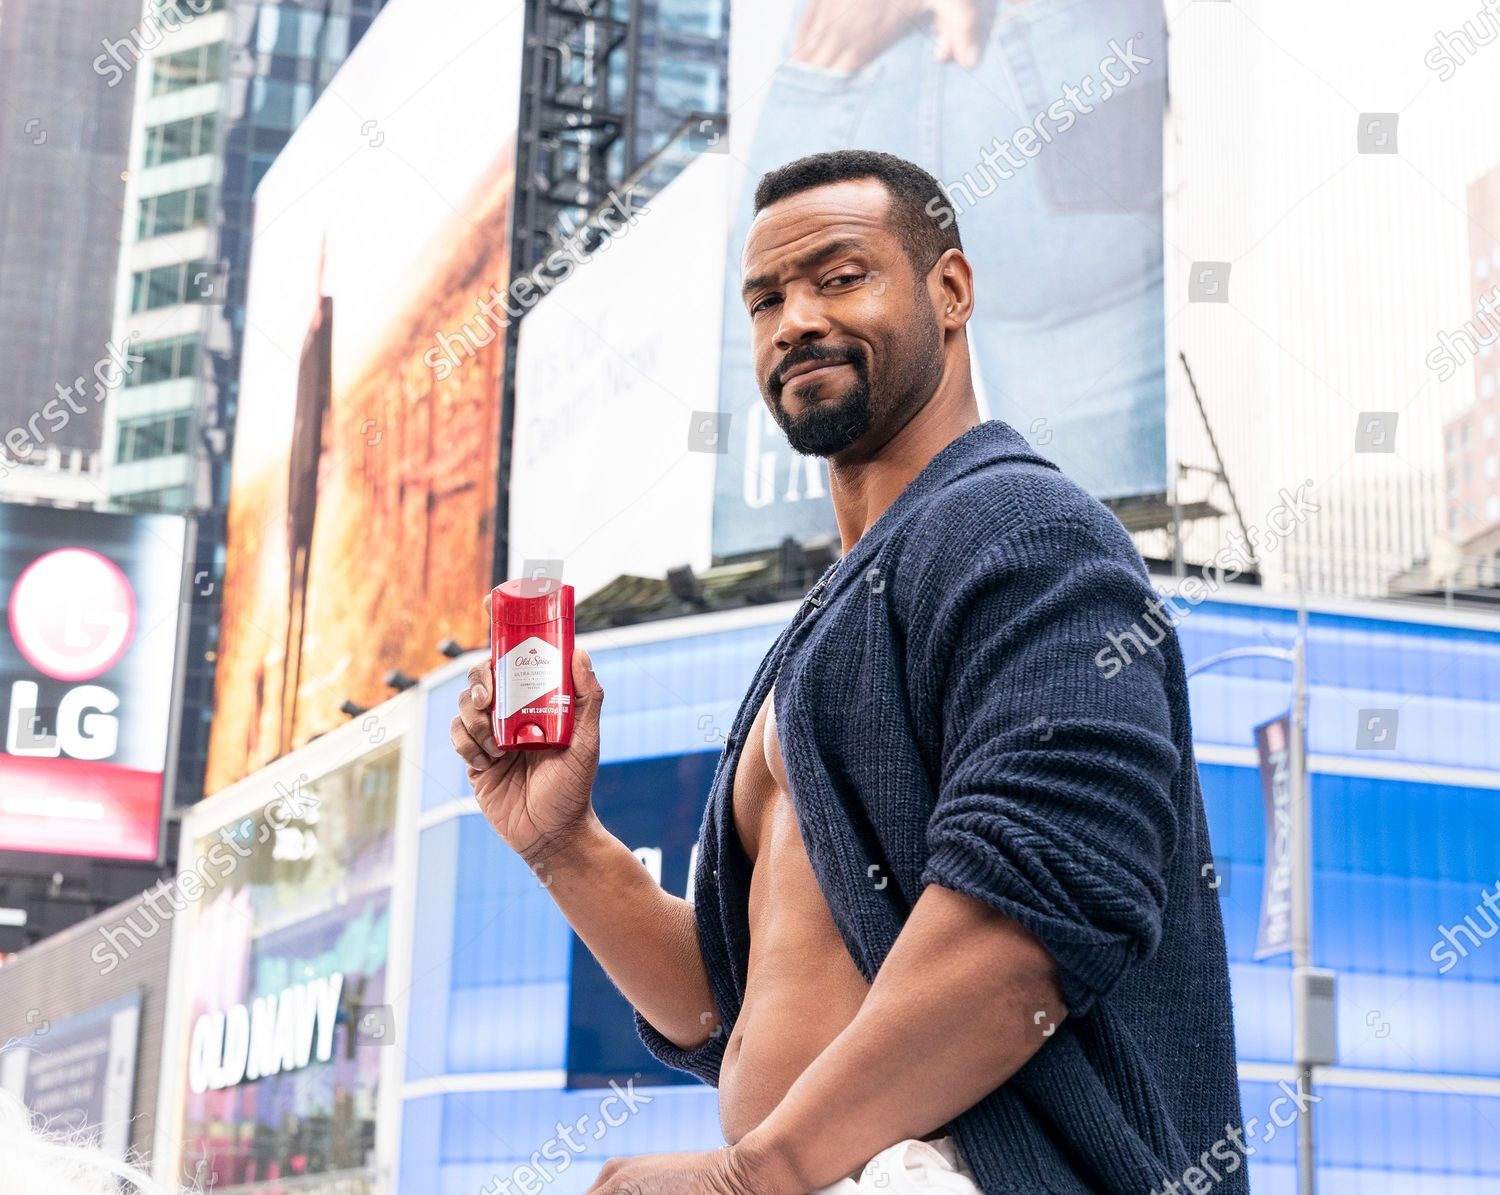 NY: Old Spice promotion on Times Square, New York, United States - 23 Jan 2020 的库存照片